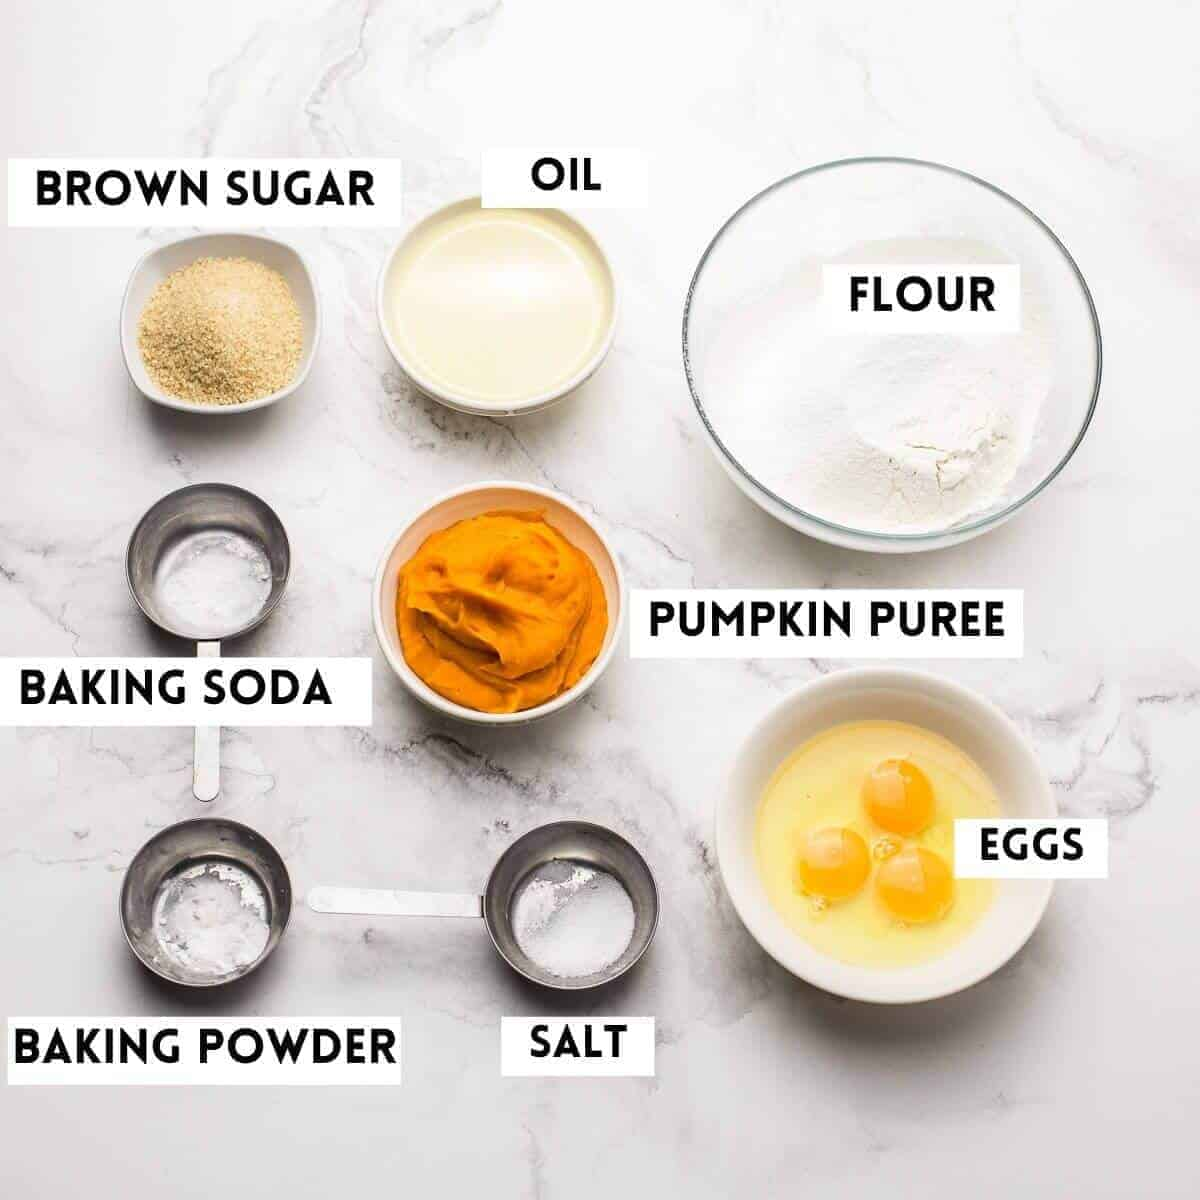 ingredients to make this recipe